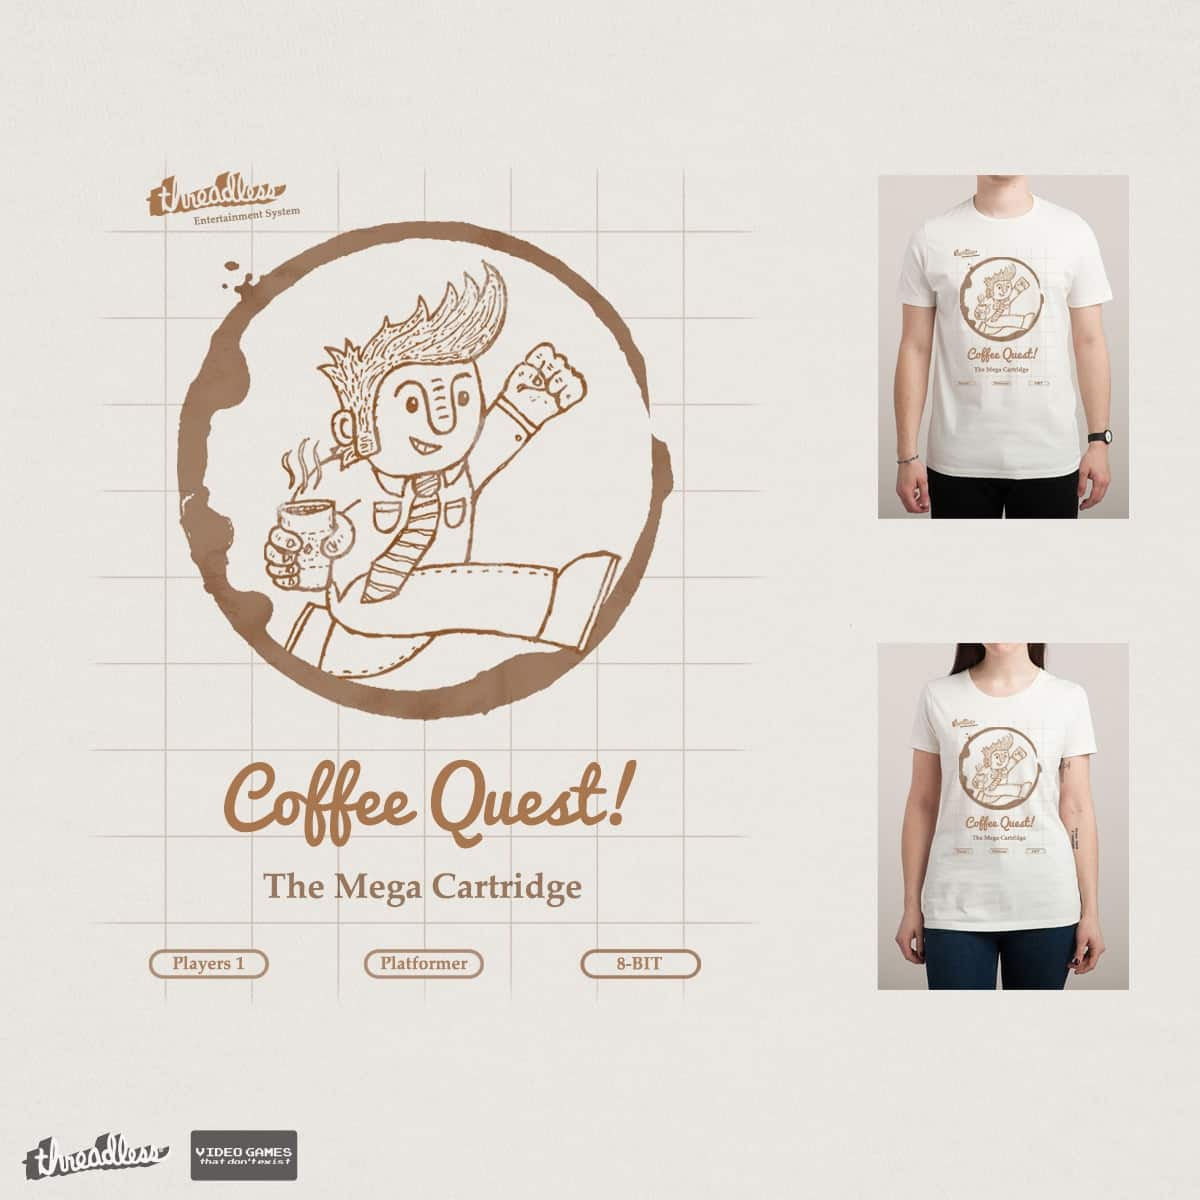 Coffee Quest! by Leo Canham on Threadless